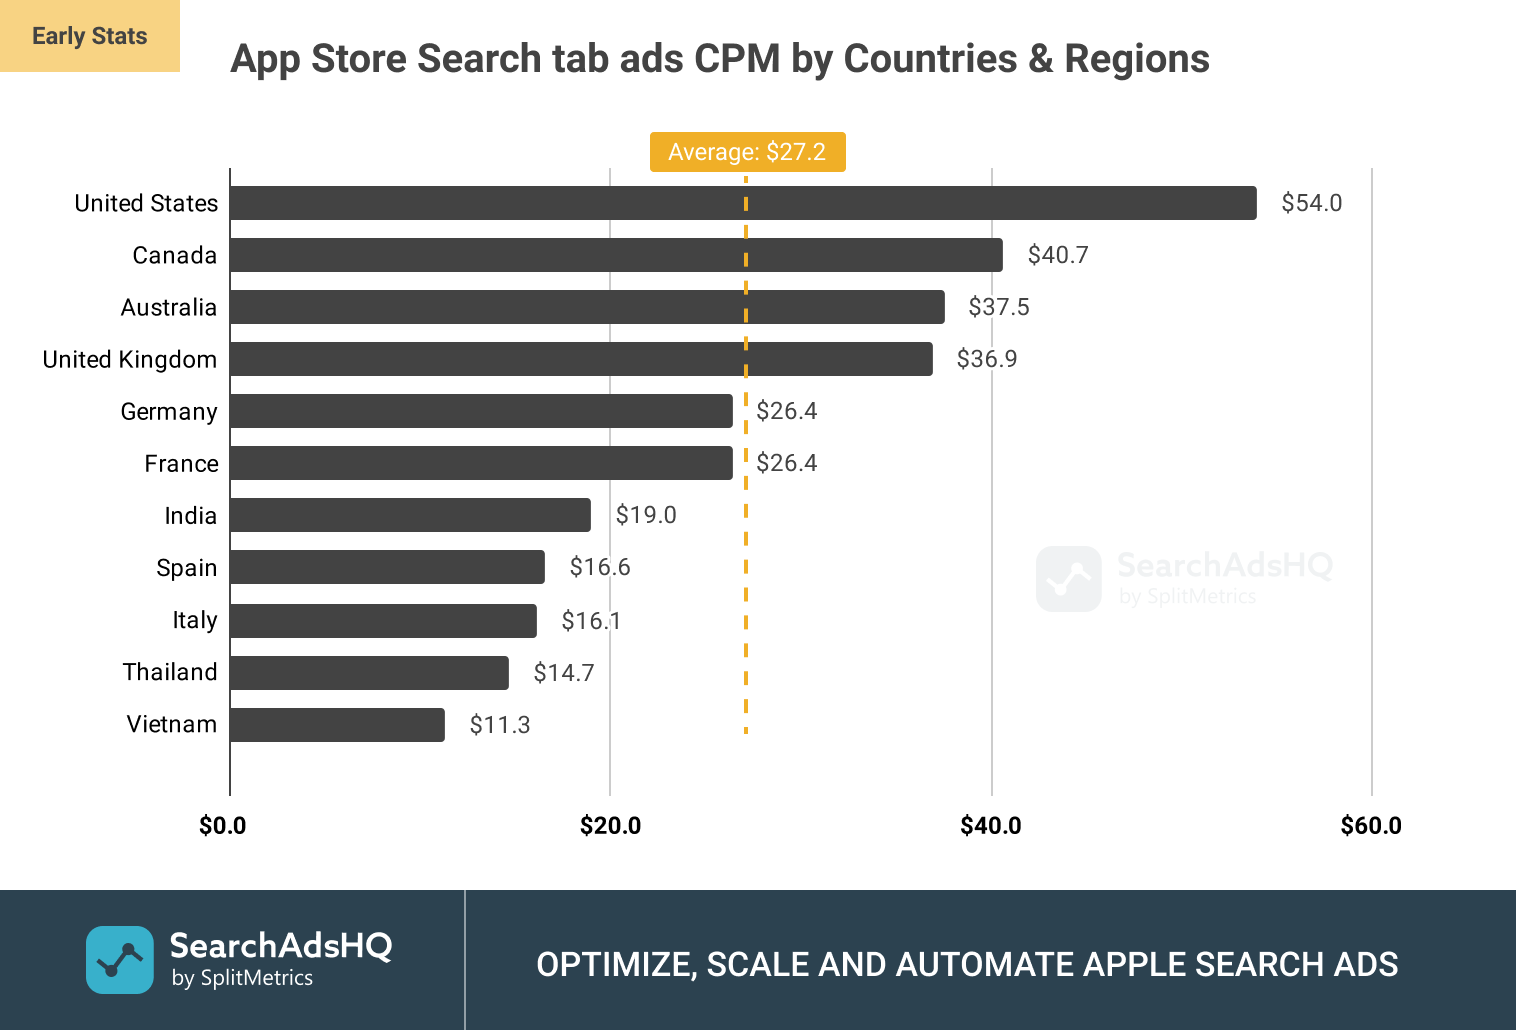 App Store Search tab ads: Average CPM (Cost per Thousand Impressions) by Countries and Regions